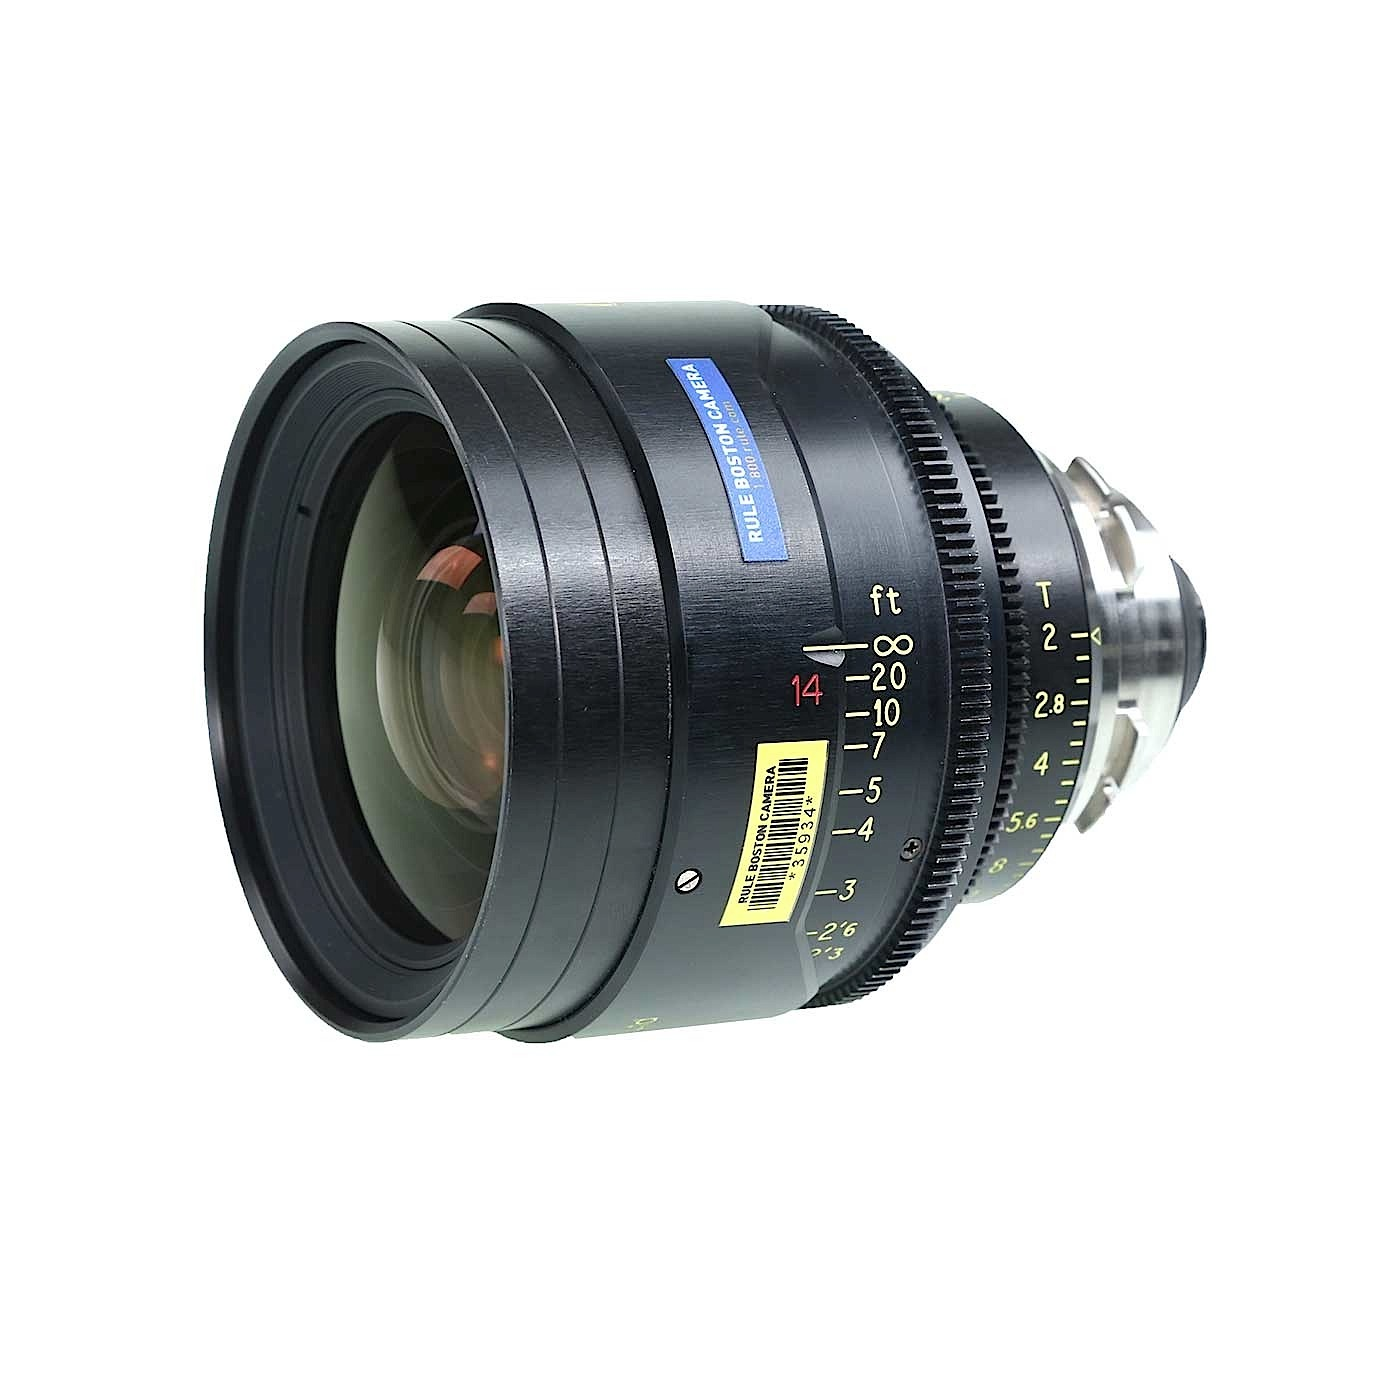 Cooke 14mm S4 PL Prime Lens